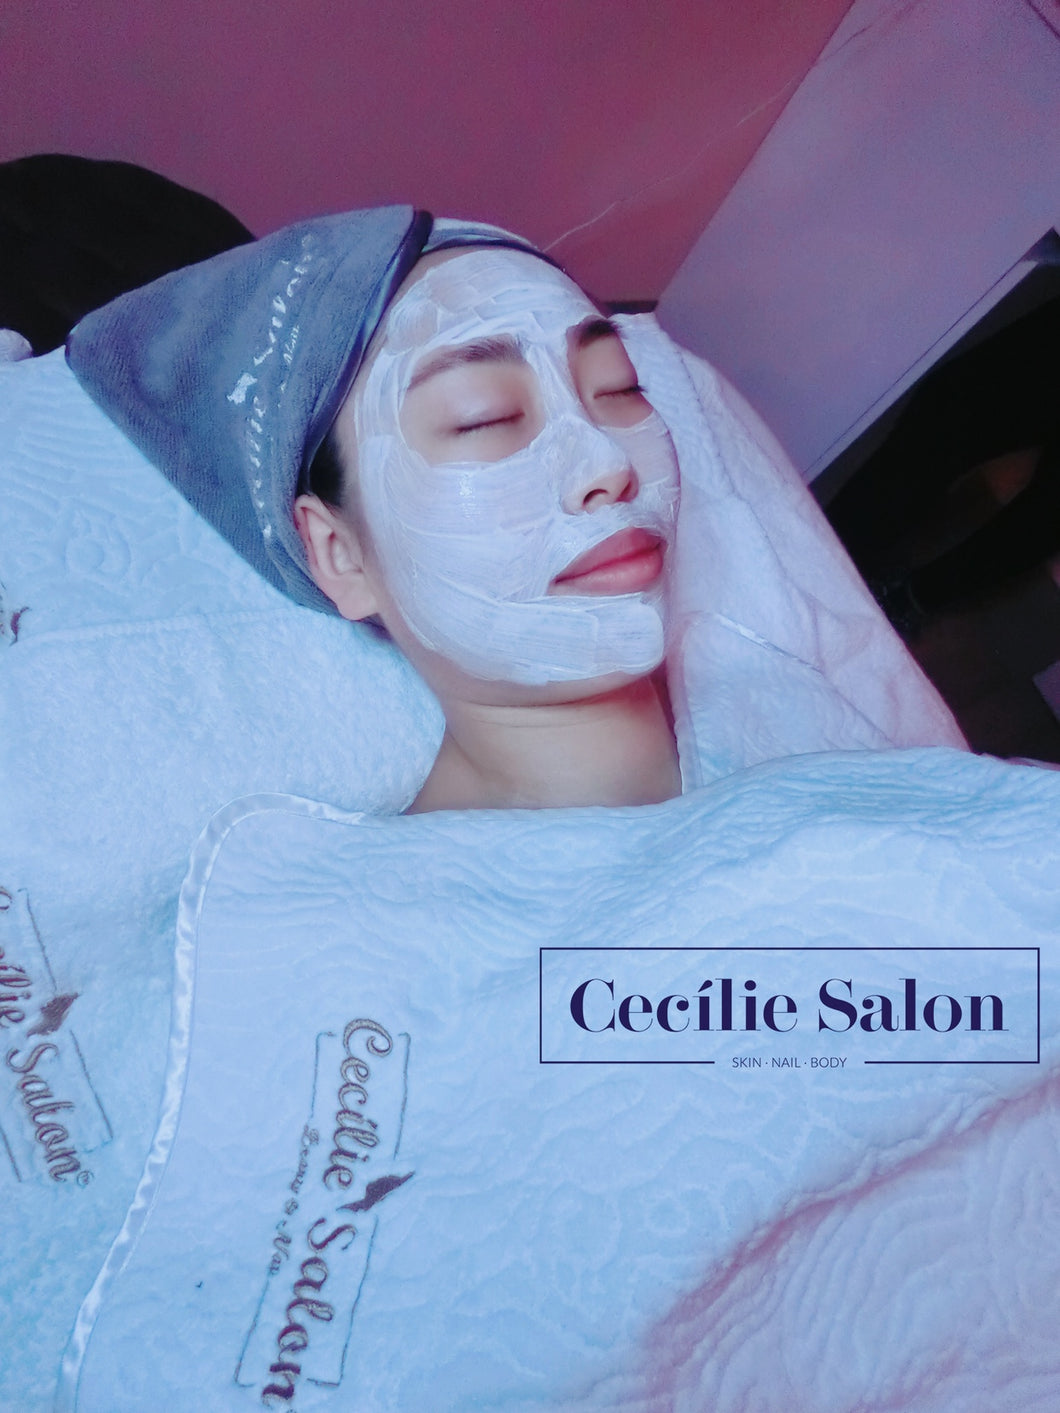 Acne Purifying and Detox Facial Treatment